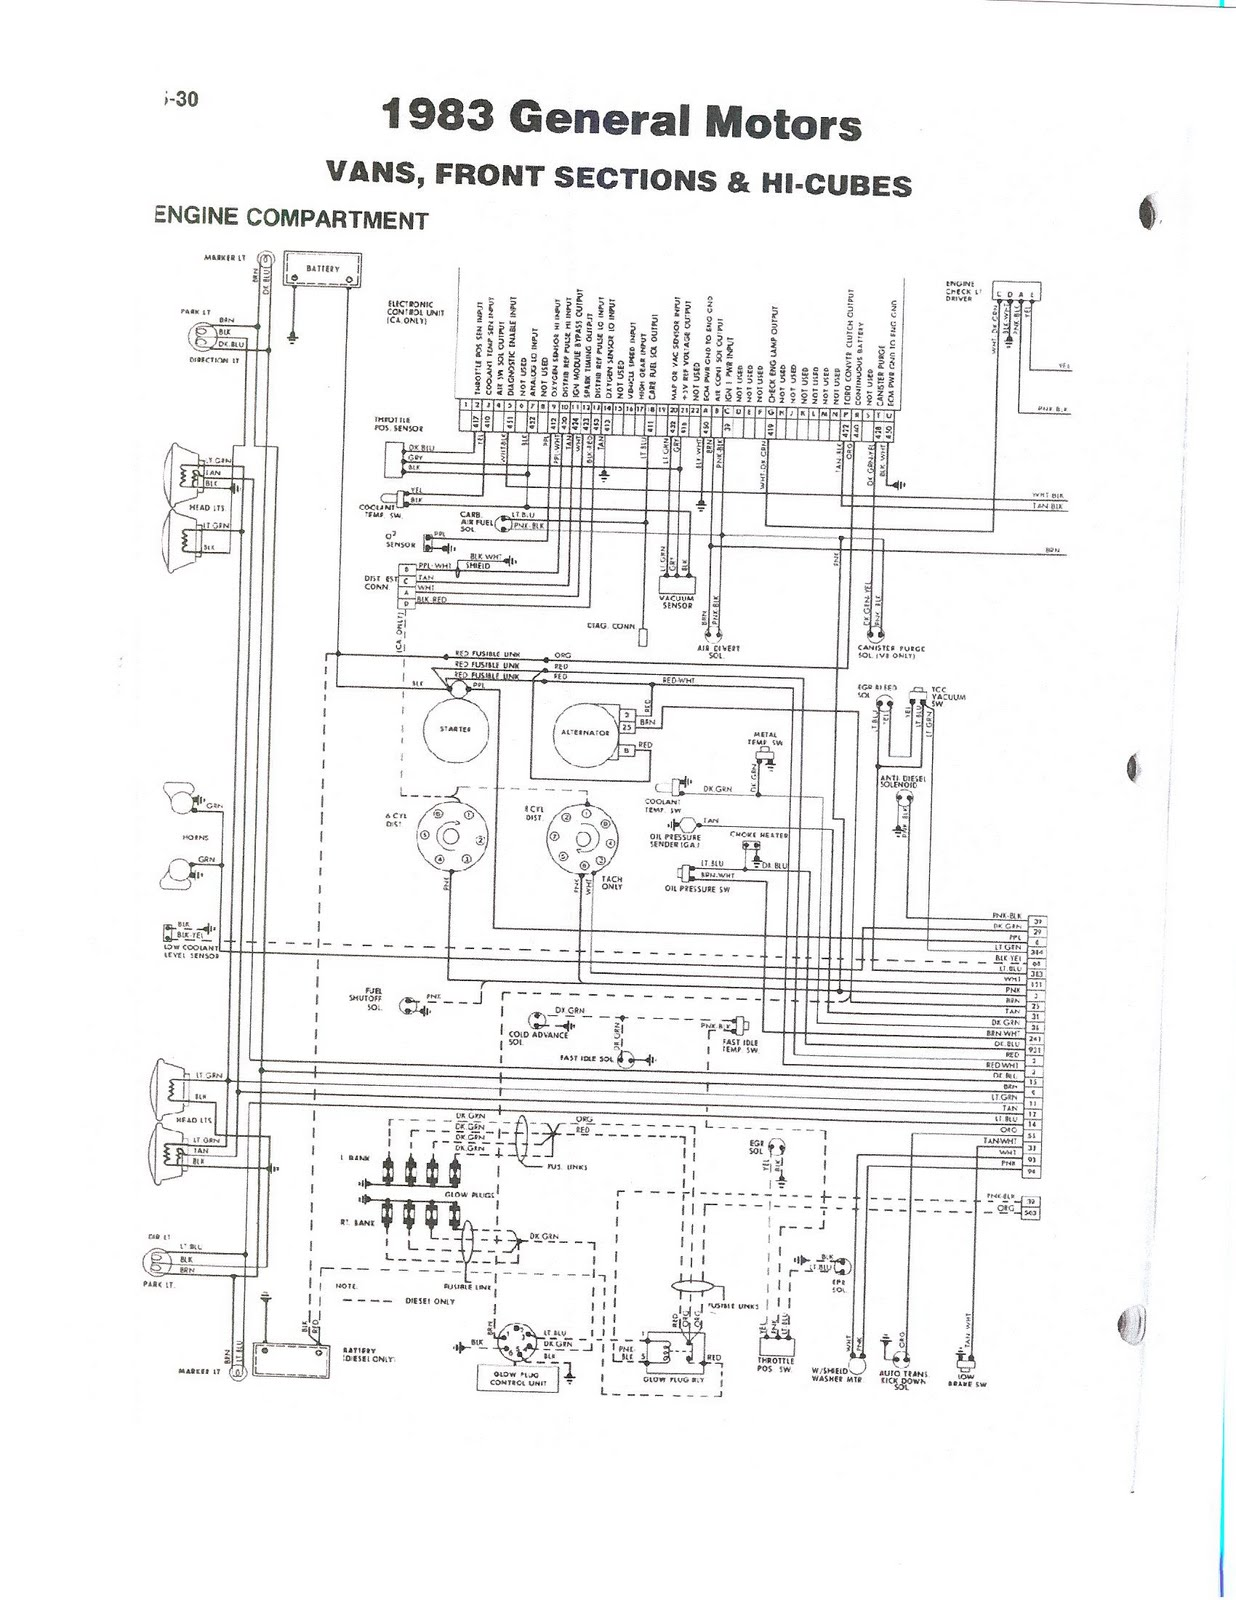 83+GM+Van+front+section+%26+Hi Cubes+engine+compartment 1983 fleetwood pace arrow owners manuals wireing diagram 83 gm for 1997 fleetwood southwind wiring diagram at n-0.co